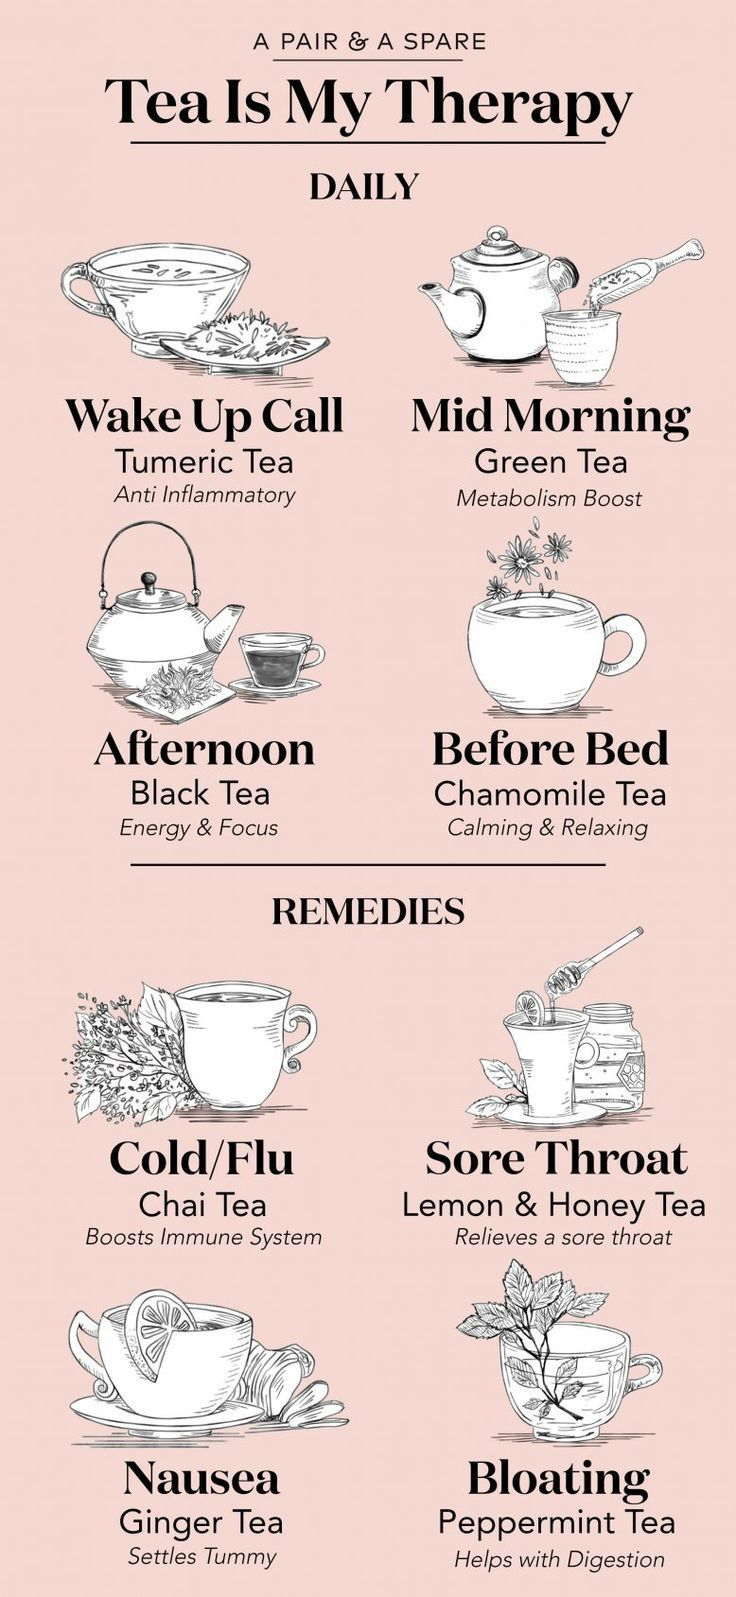 A Pair & A Spare | Tea Is My Therapy